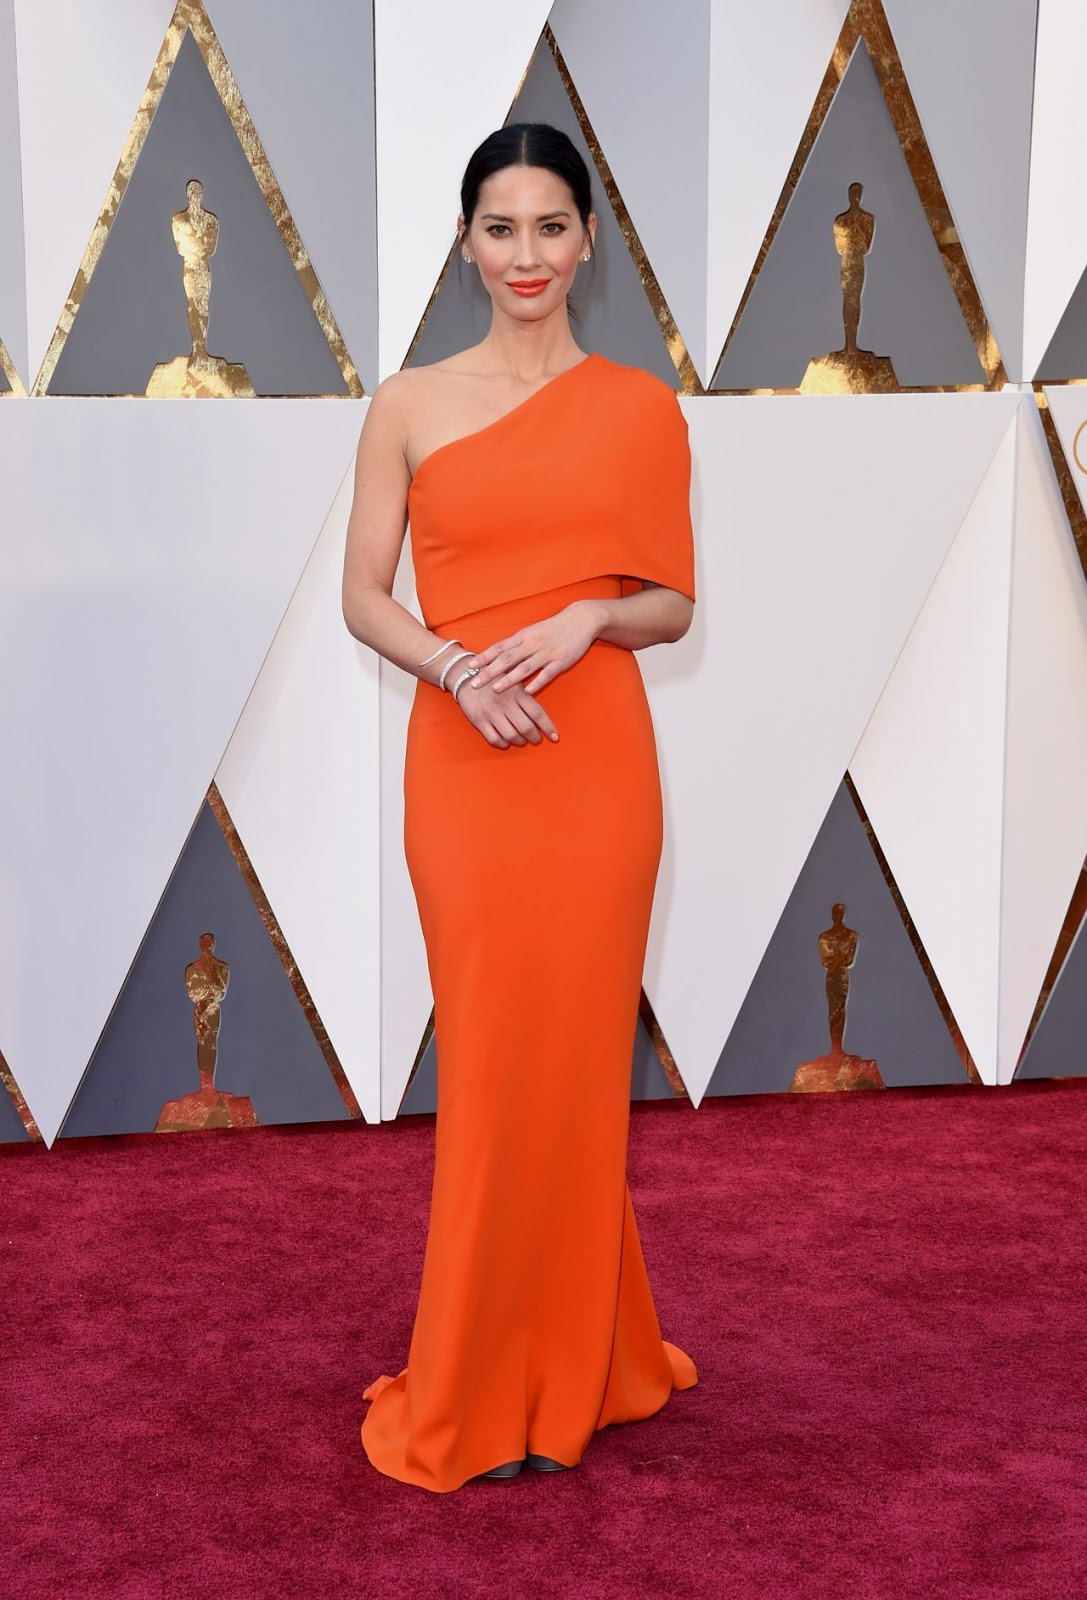 Olivia Munn wears Stella McCartney to the Oscars 2016